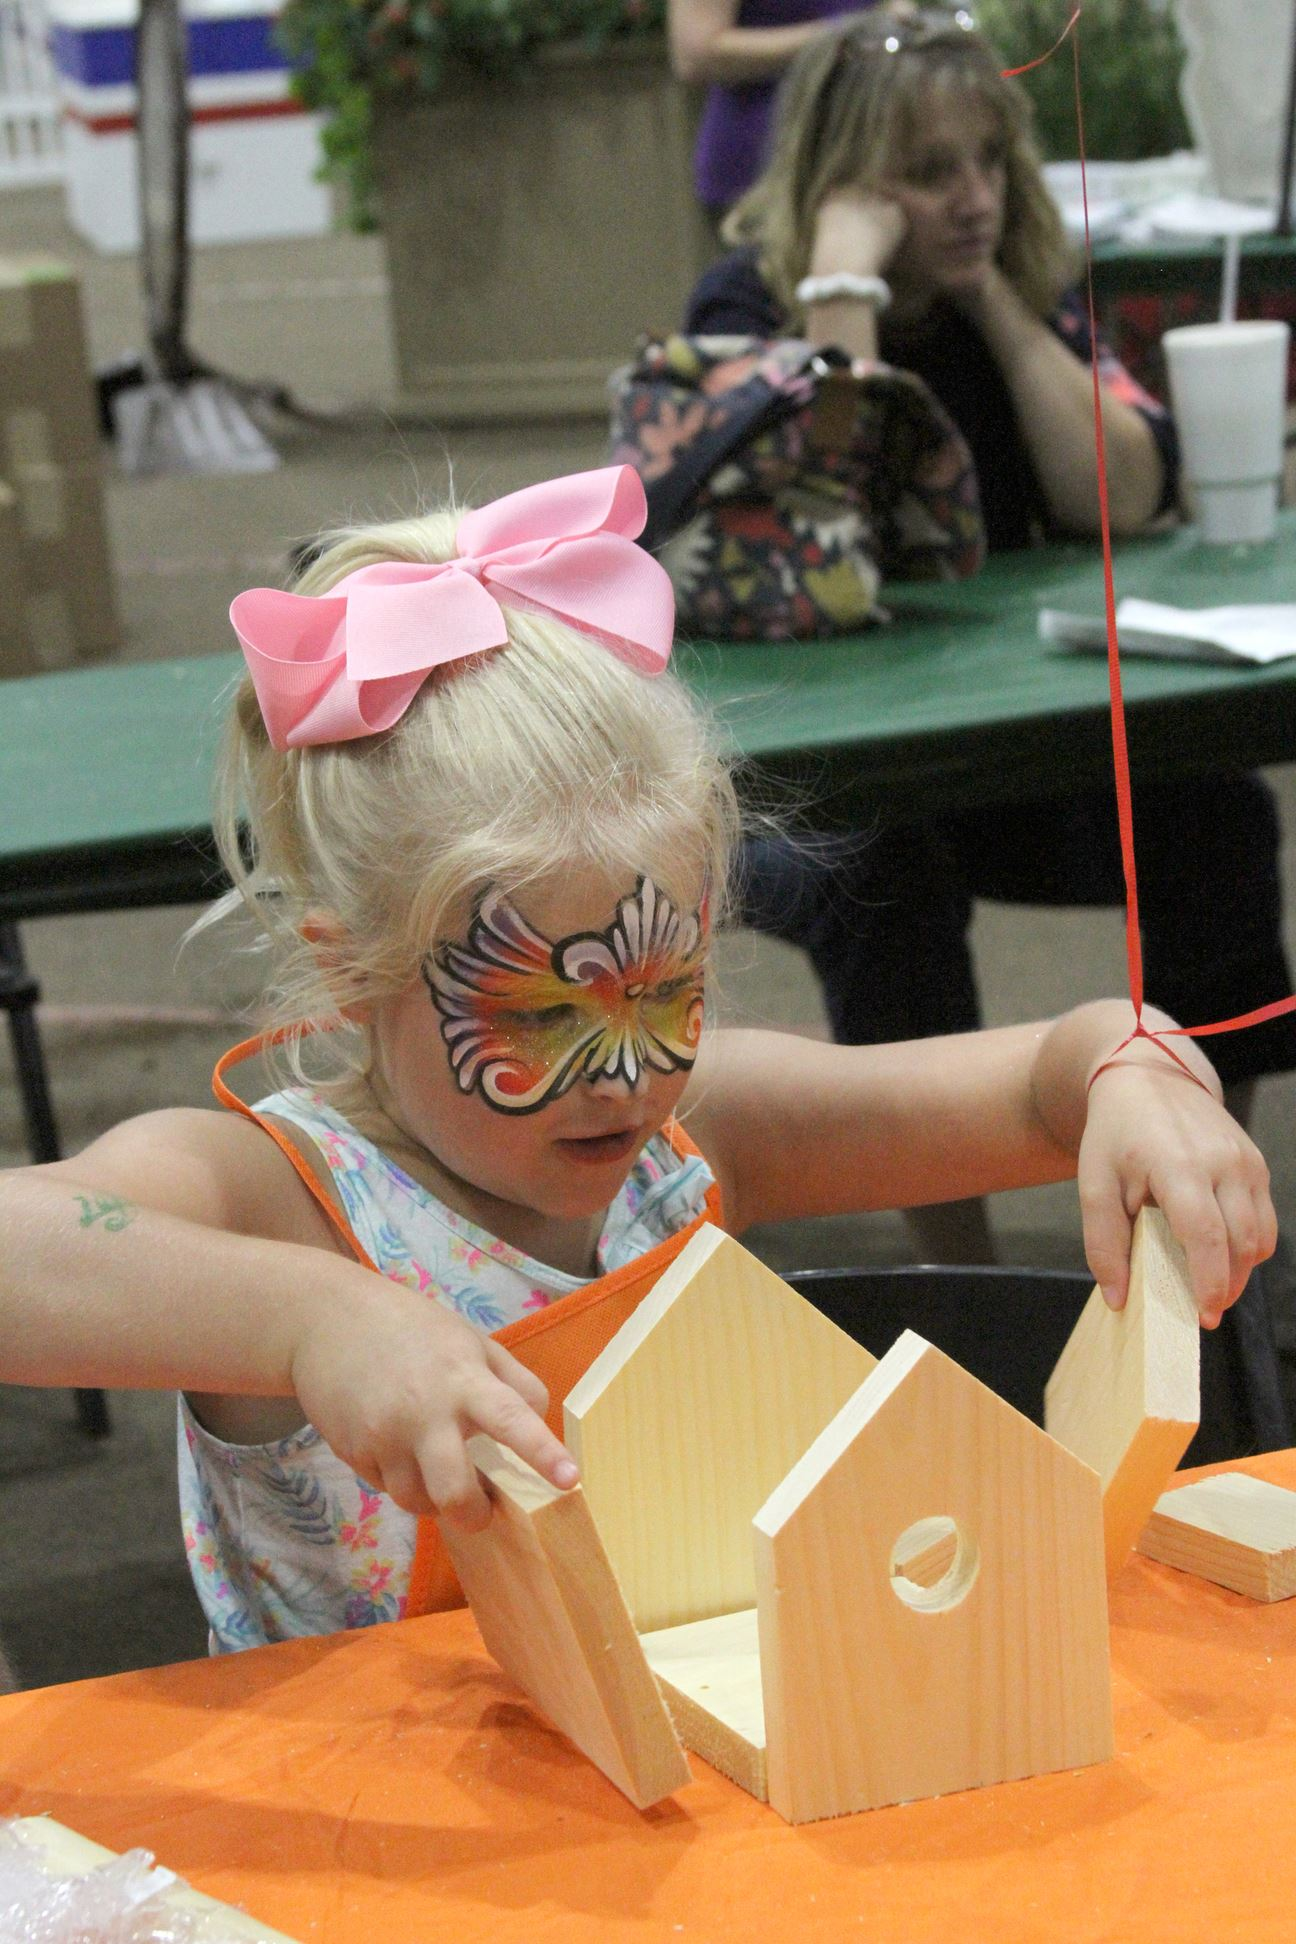 Little girl with her face painted with a butterfly putting together a birdhouse